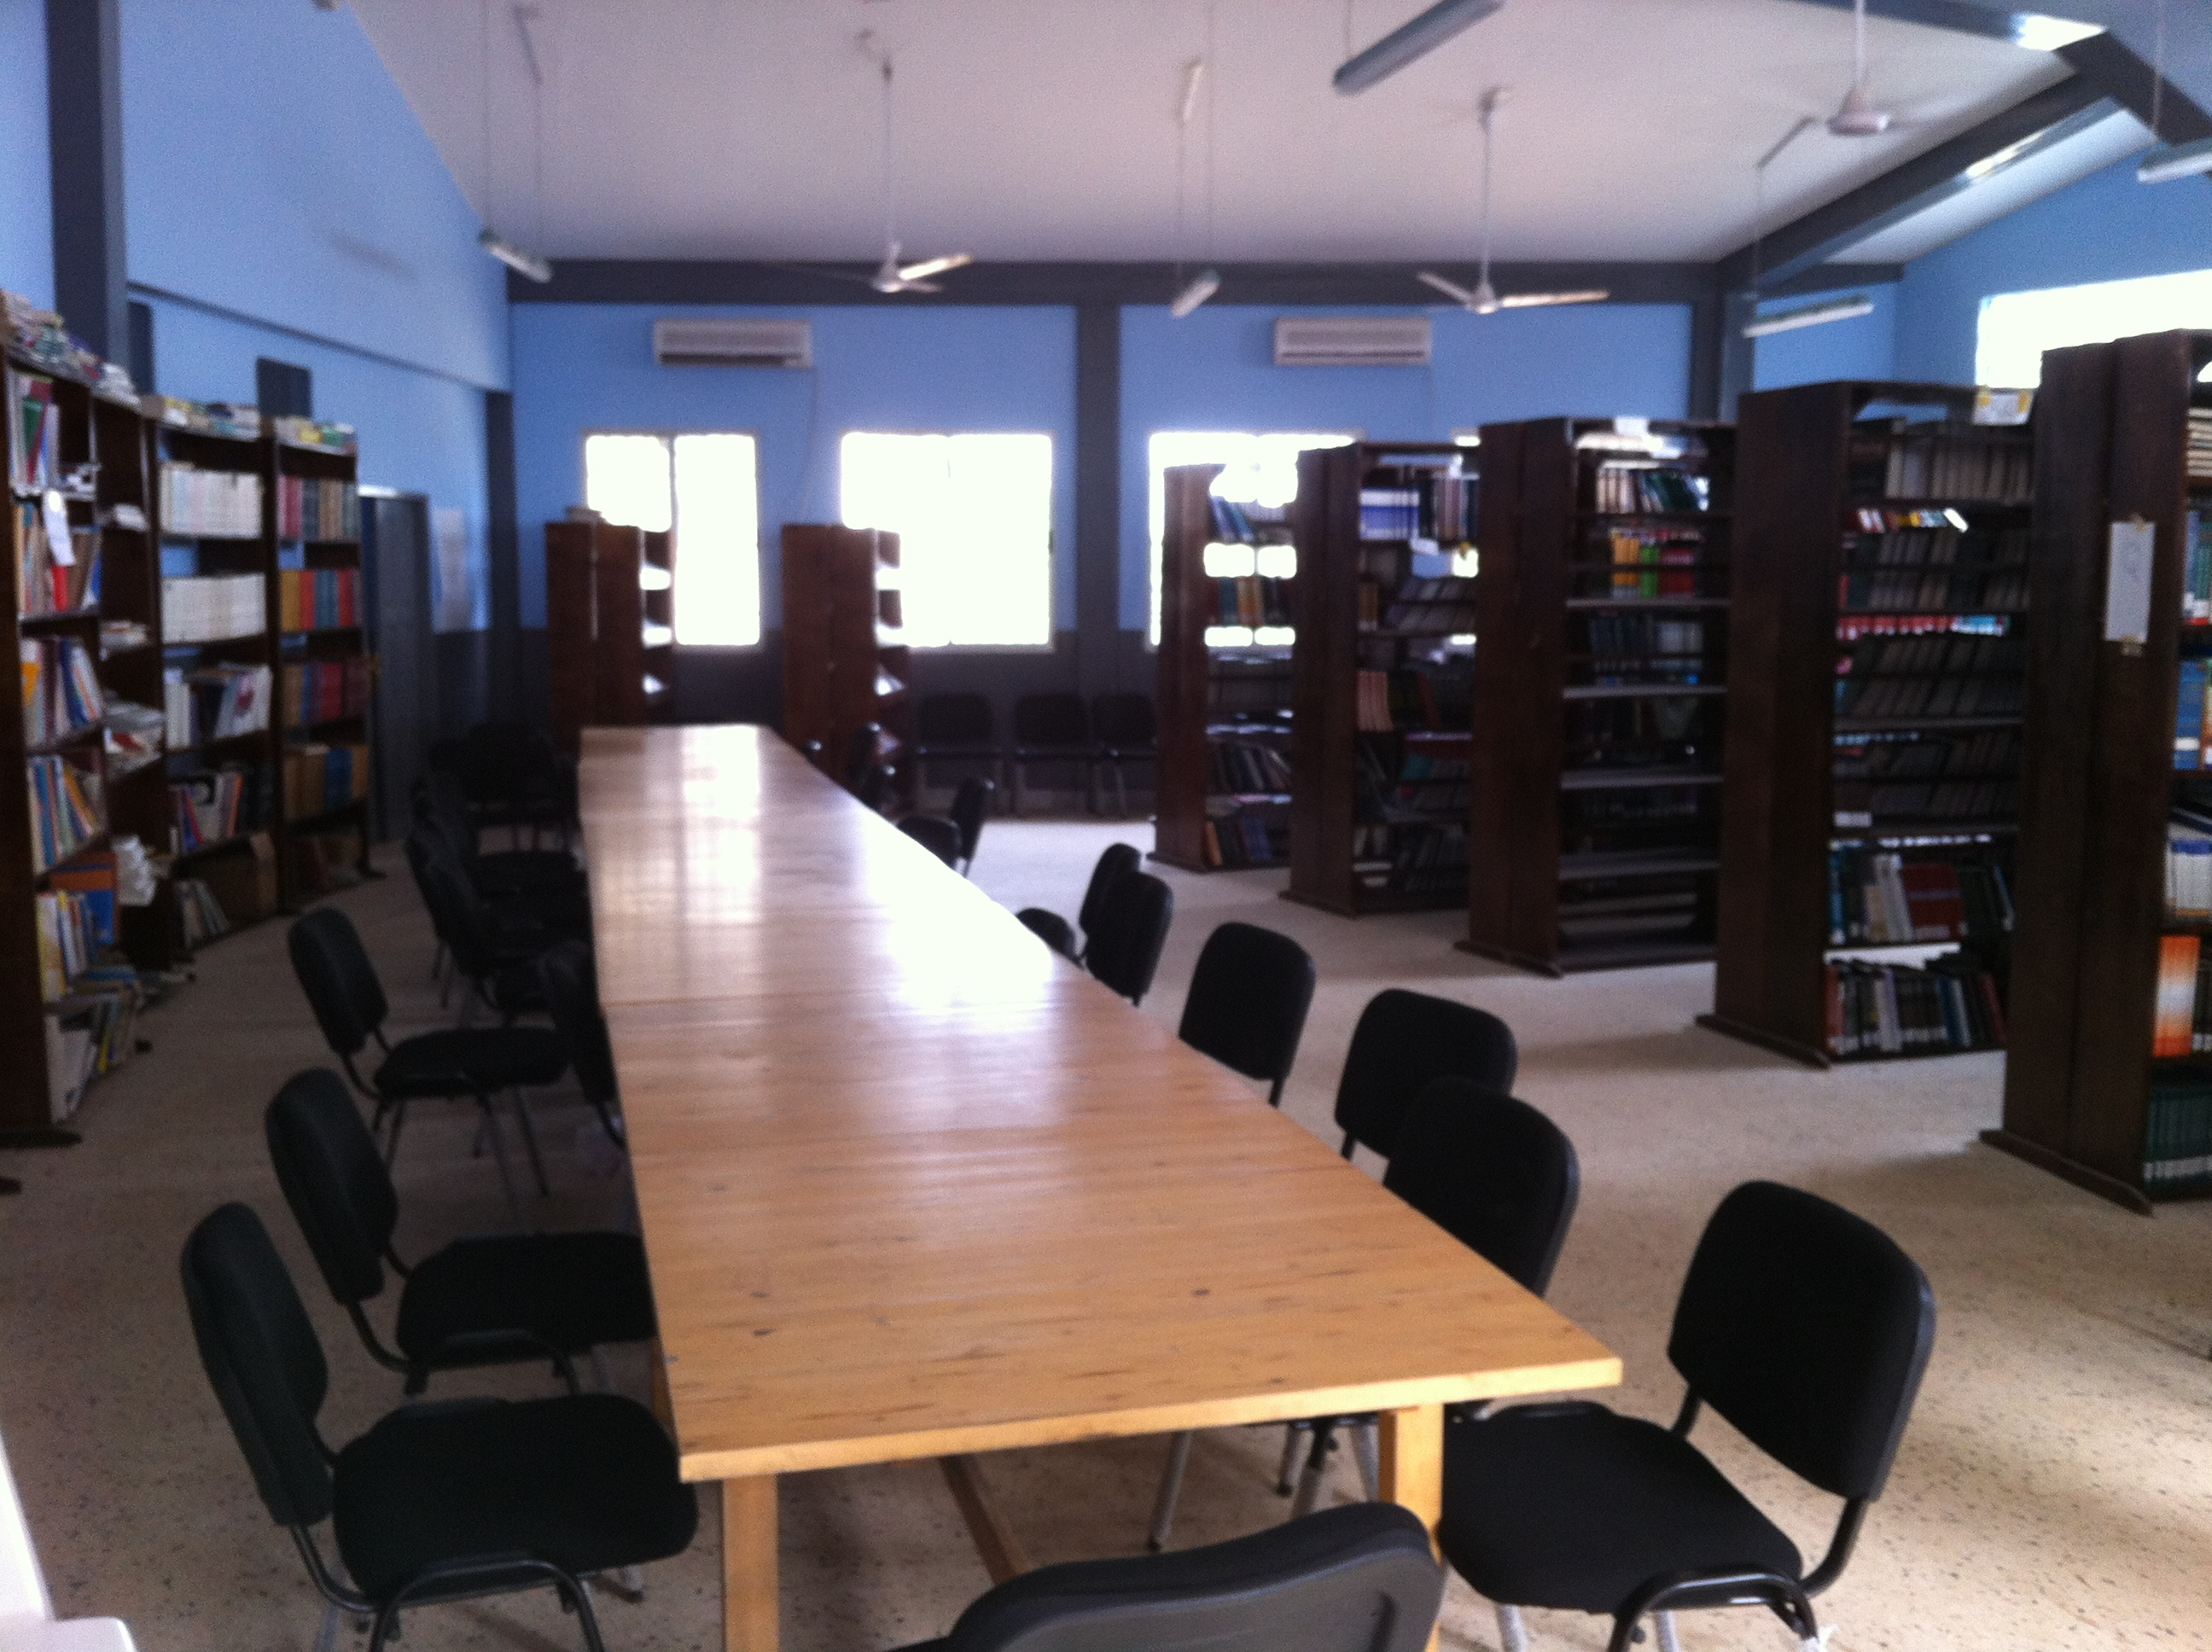 A.M. Dogliotti College of Medicine and Pharmacy Library